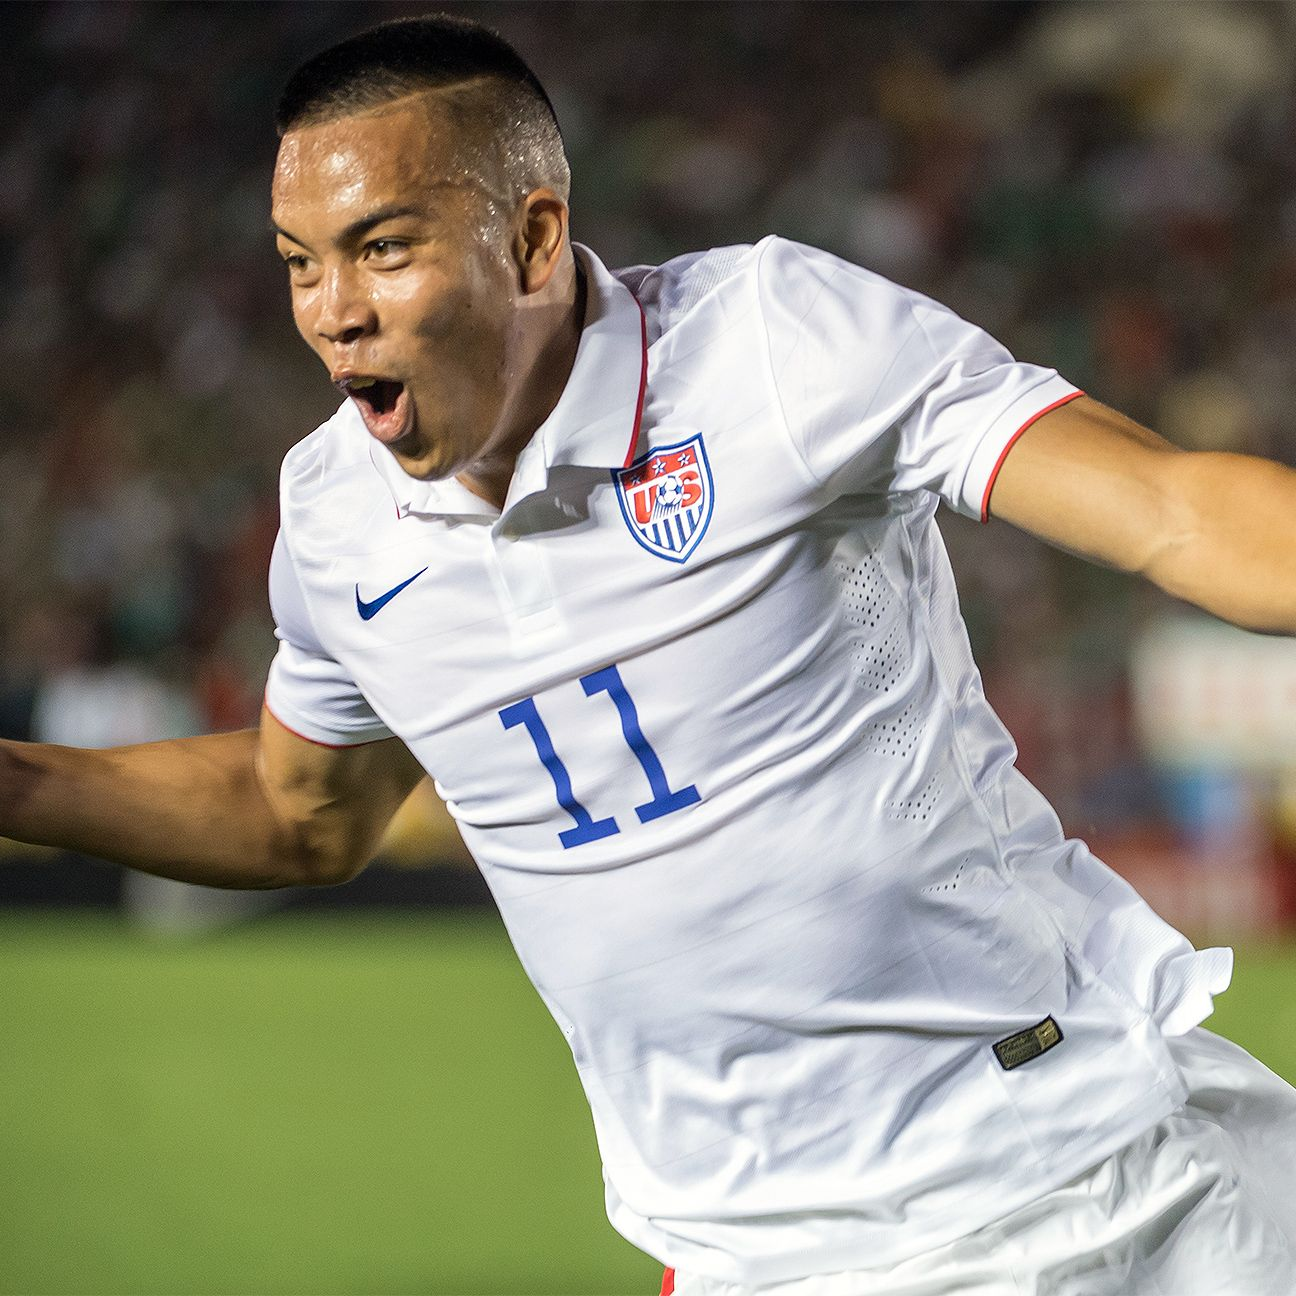 U.S. striker Bobby Wood signs for Hamburg on four-year contract - ESPN FC